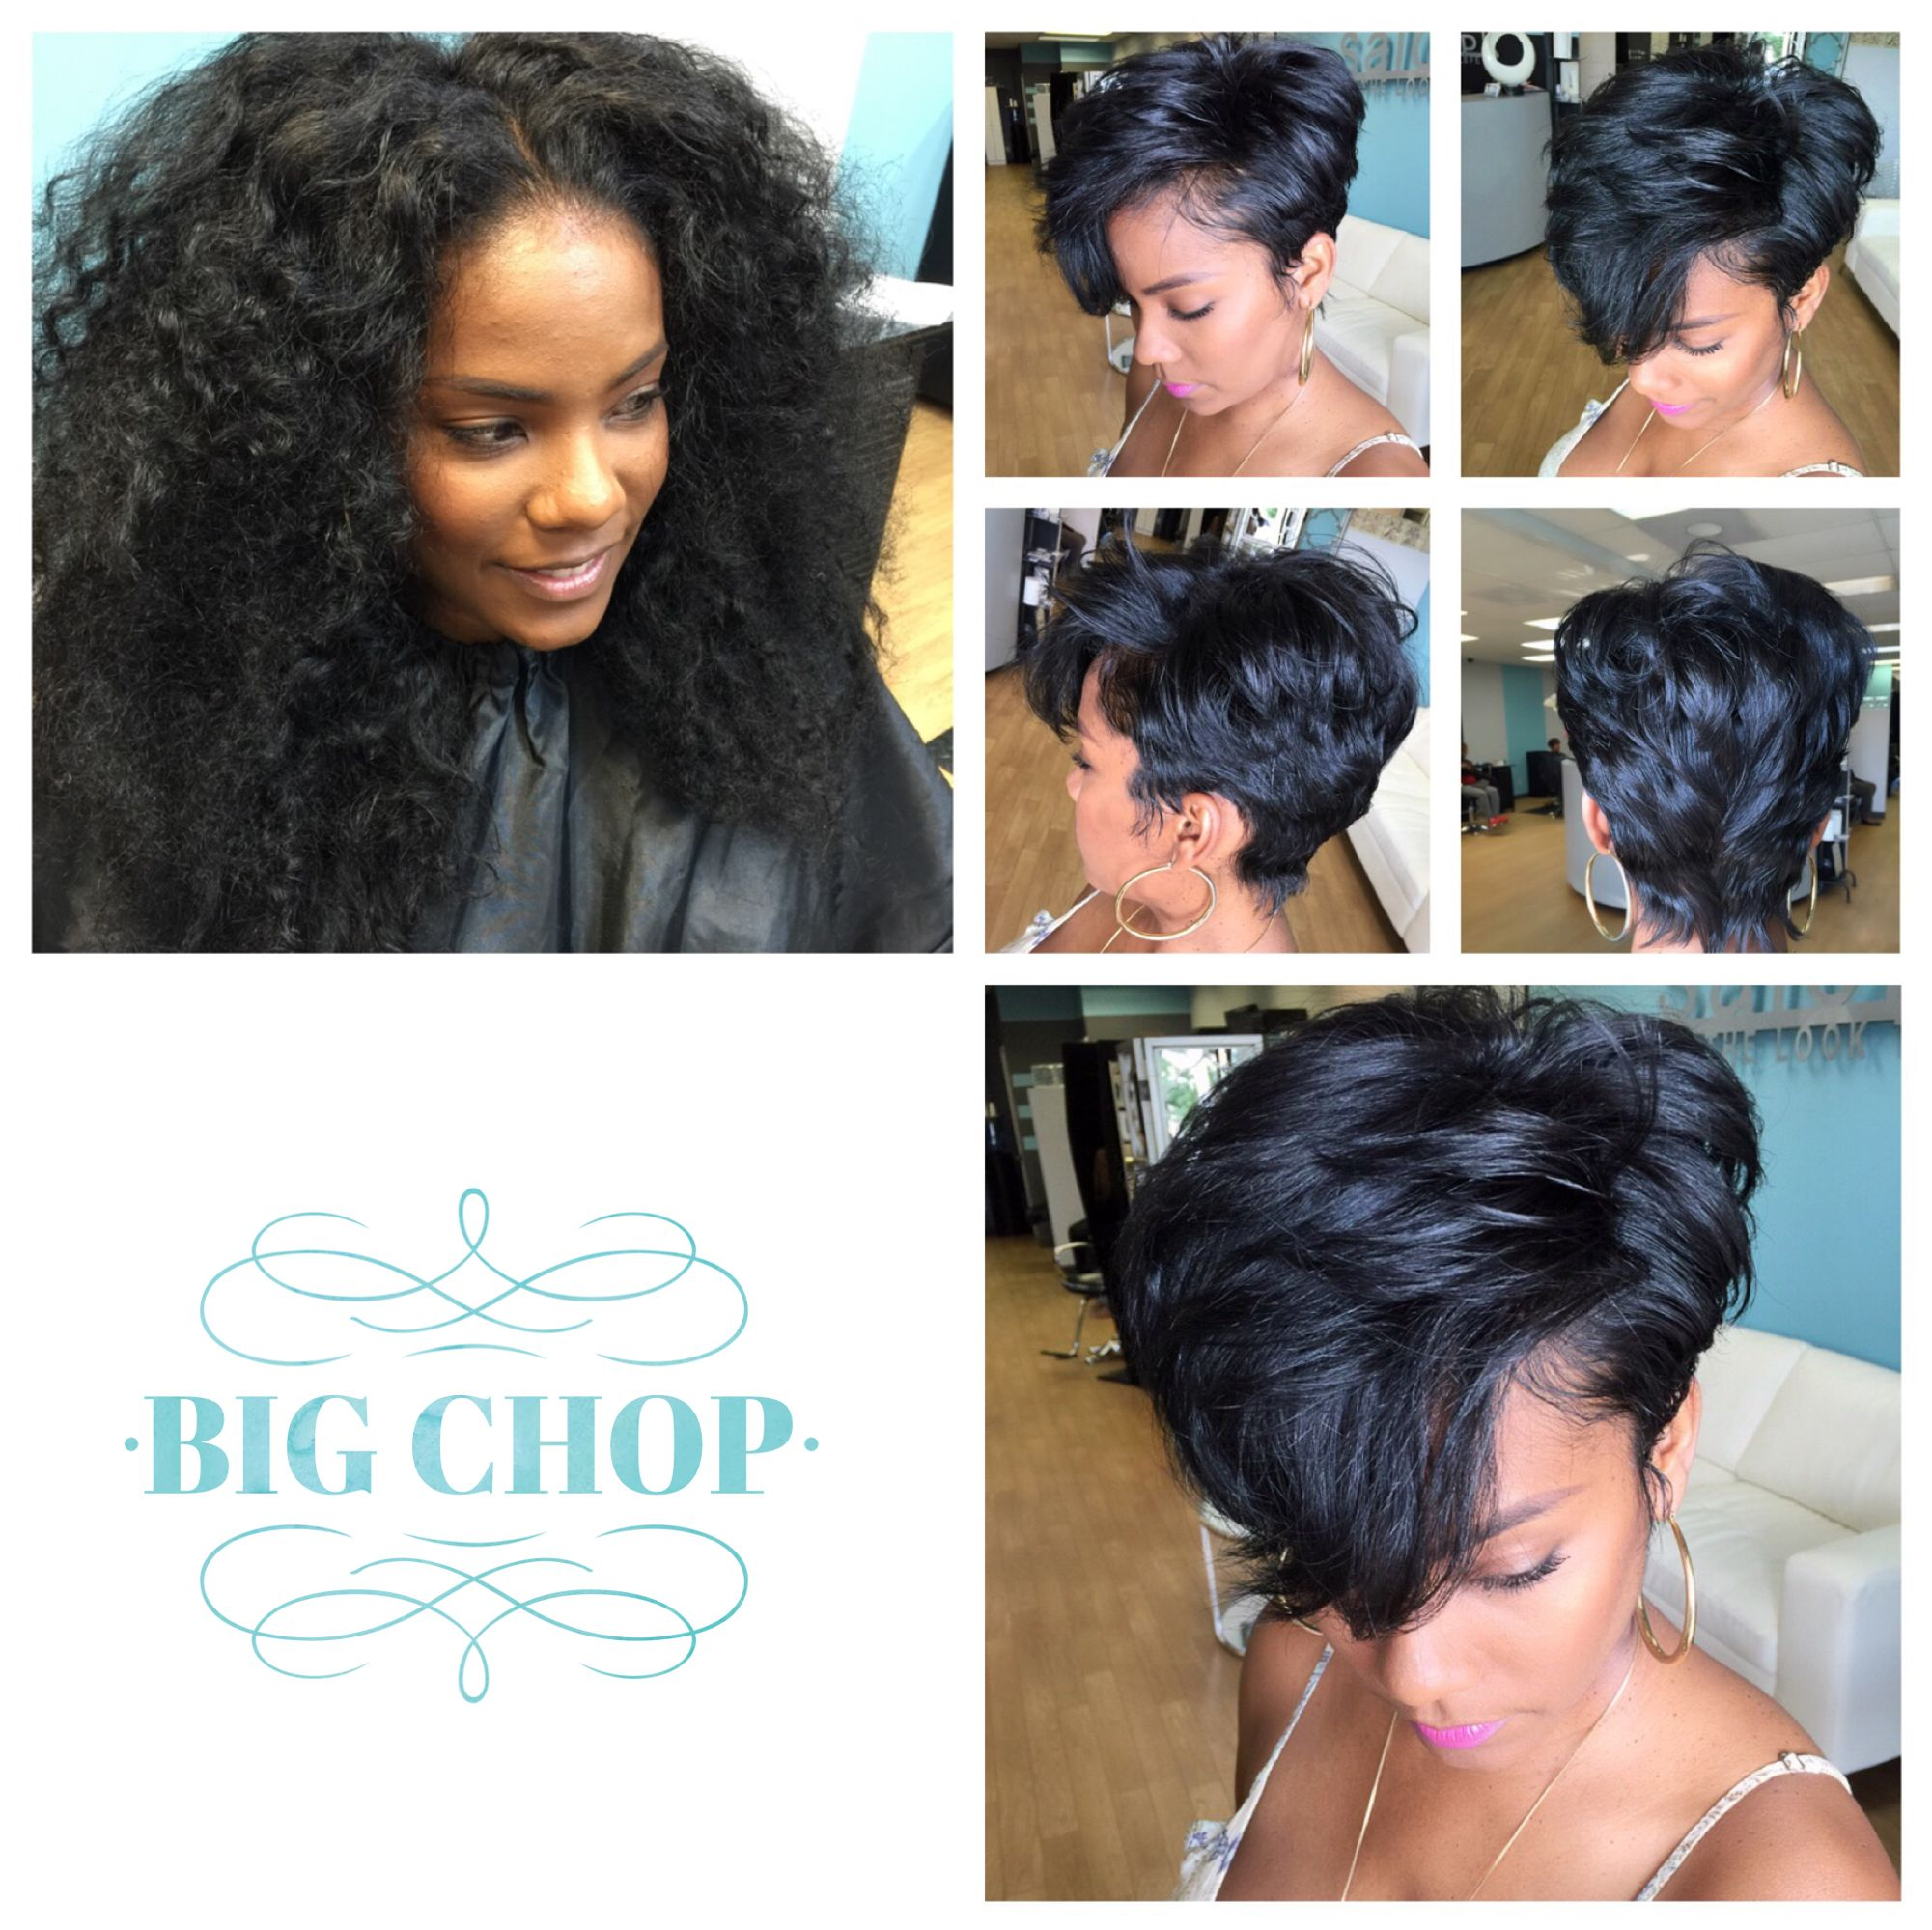 Short Hairstyles Short Haircuts Shorthaircuts For Black Women Hairstyles By Celebrity Stylist Pekela Riley Short Hair Styles Hair Styles Natural Hair Salons